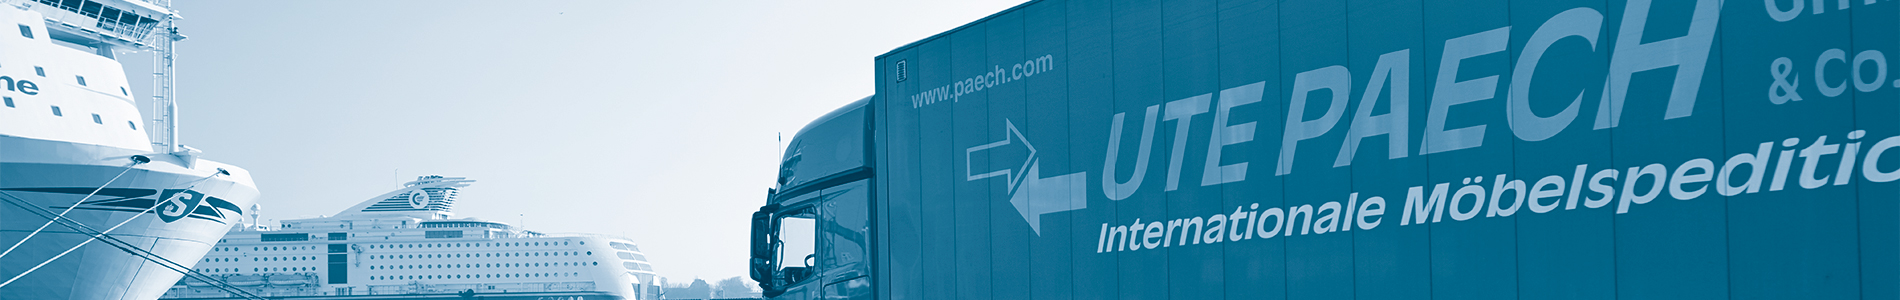 Ute Paech GmbH & Co. KG - Move … and a lot more!